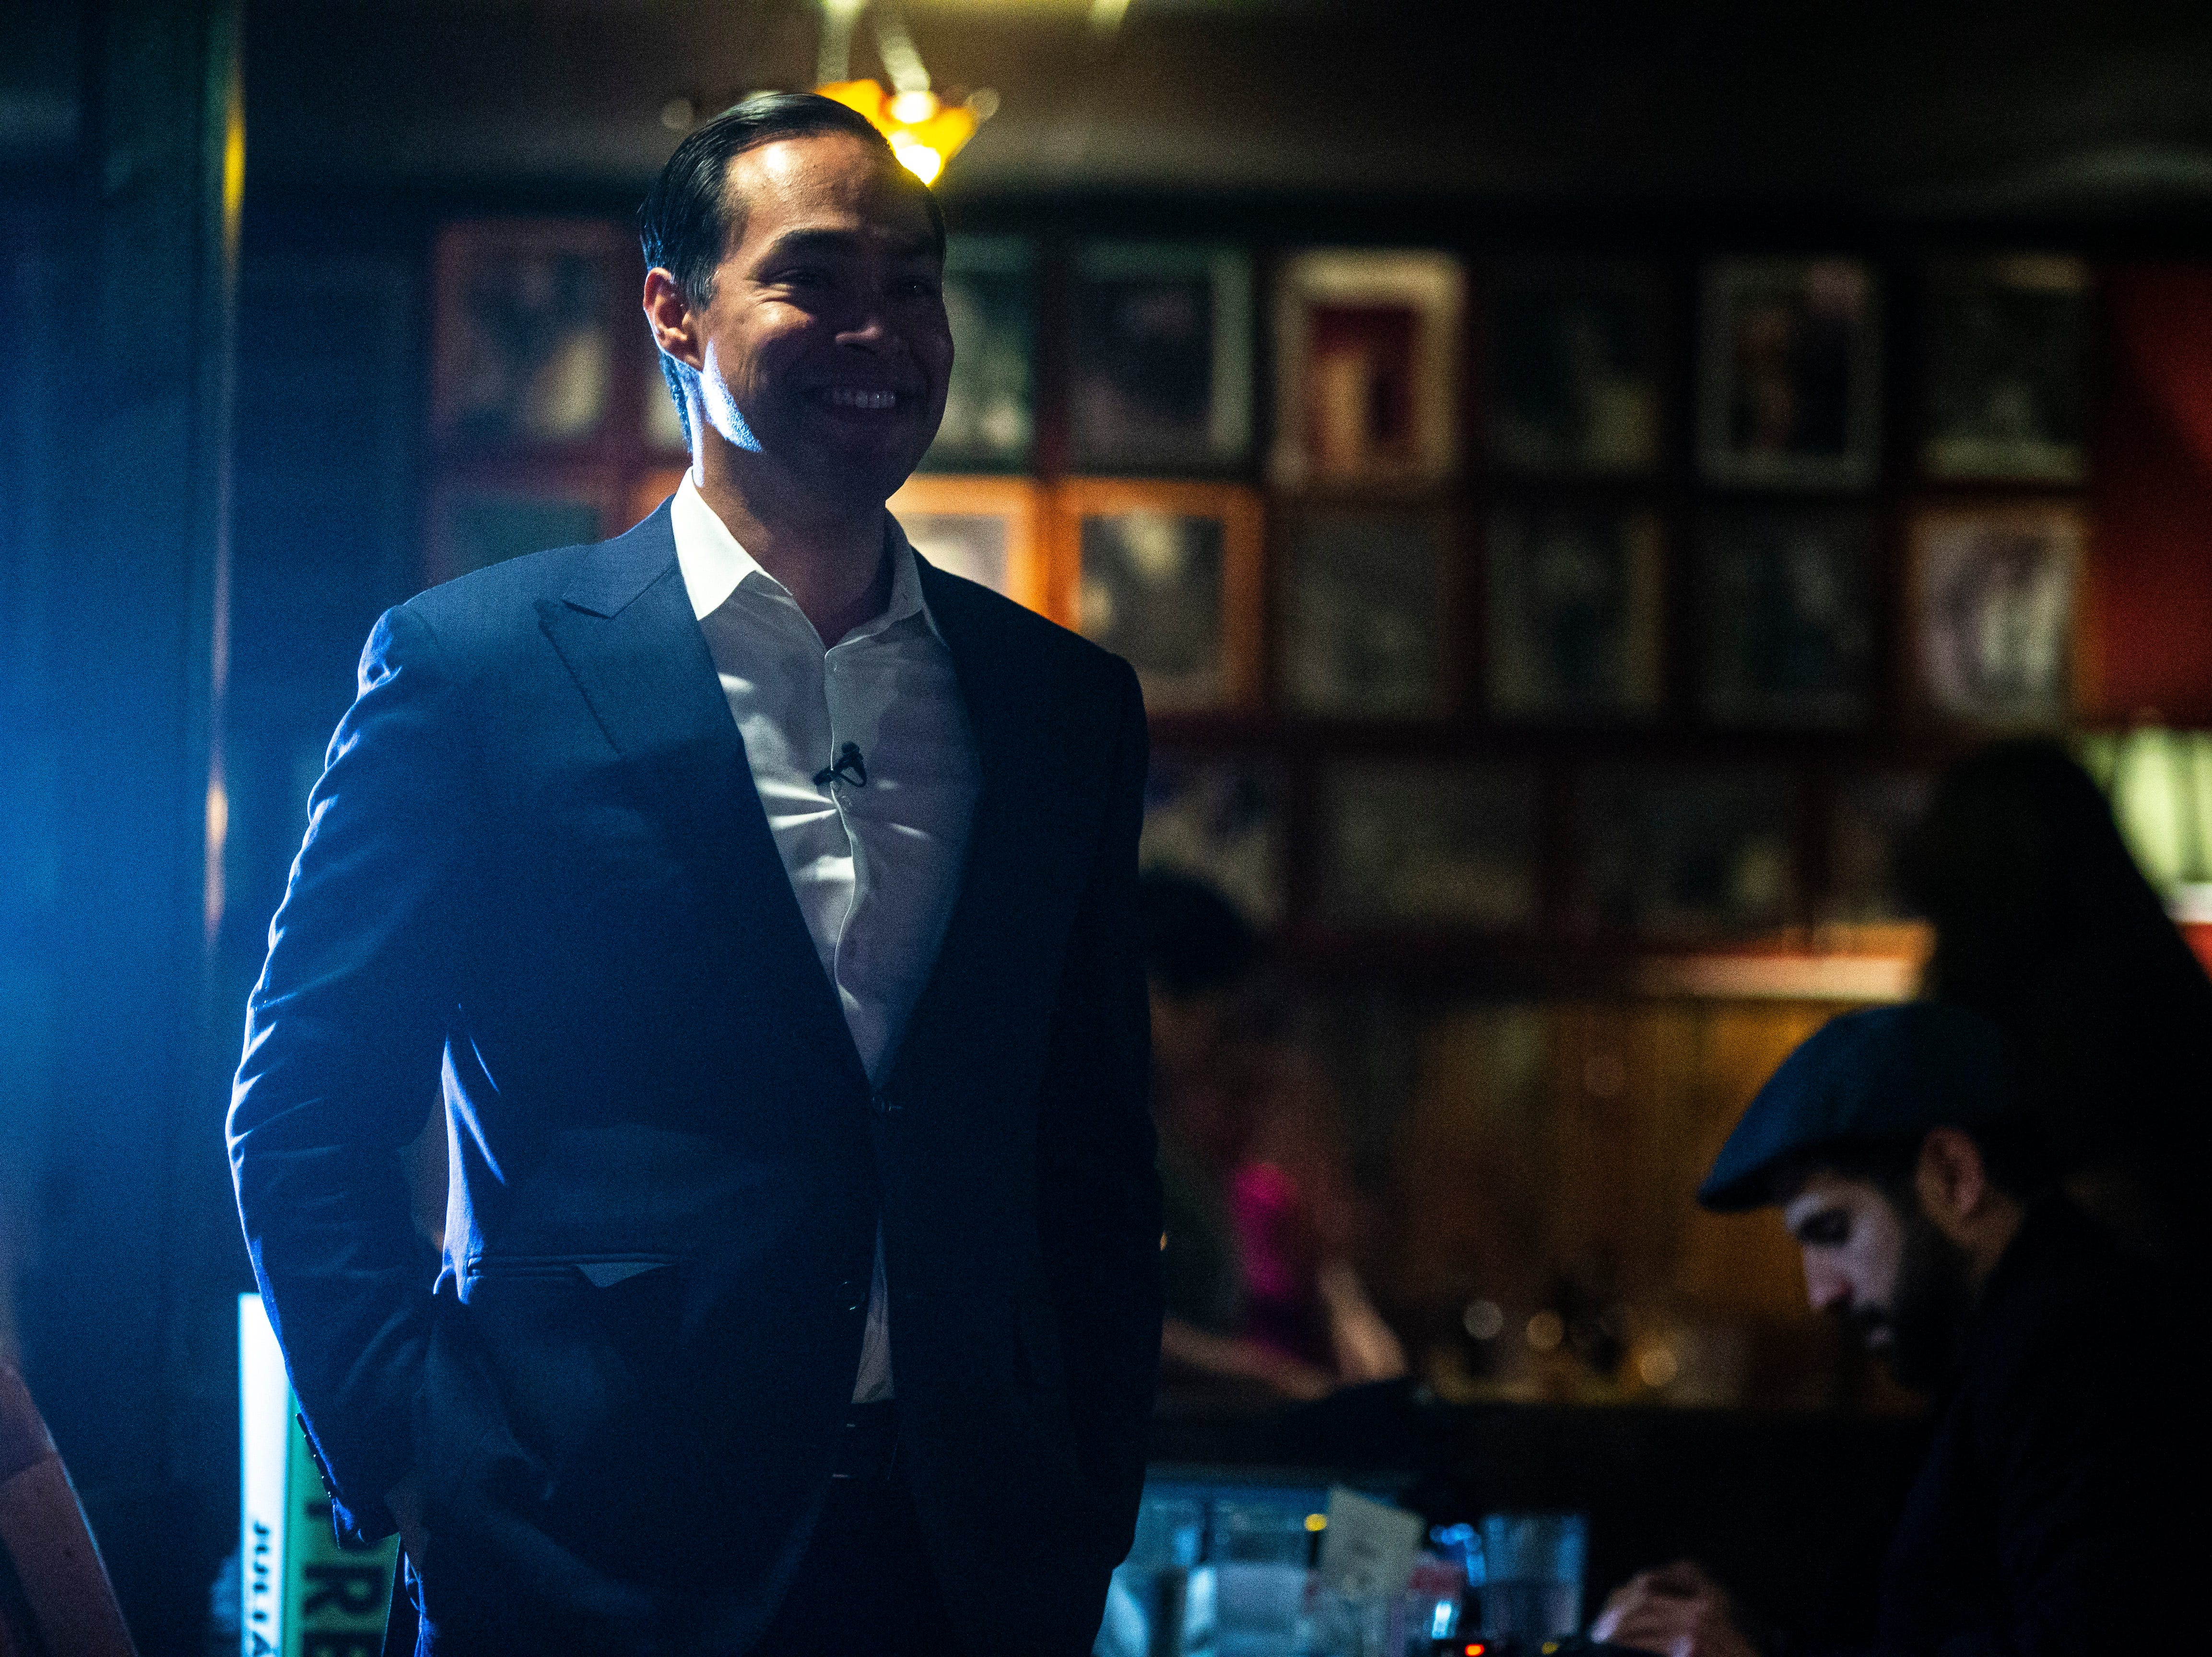 Democratic presidential candidate Julián Castro smiles while he is introduced during a Lotería game night hosted by LULAC Council 308 on Sunday, March 31, 2019, at The Mill in downtown Iowa City, Iowa.